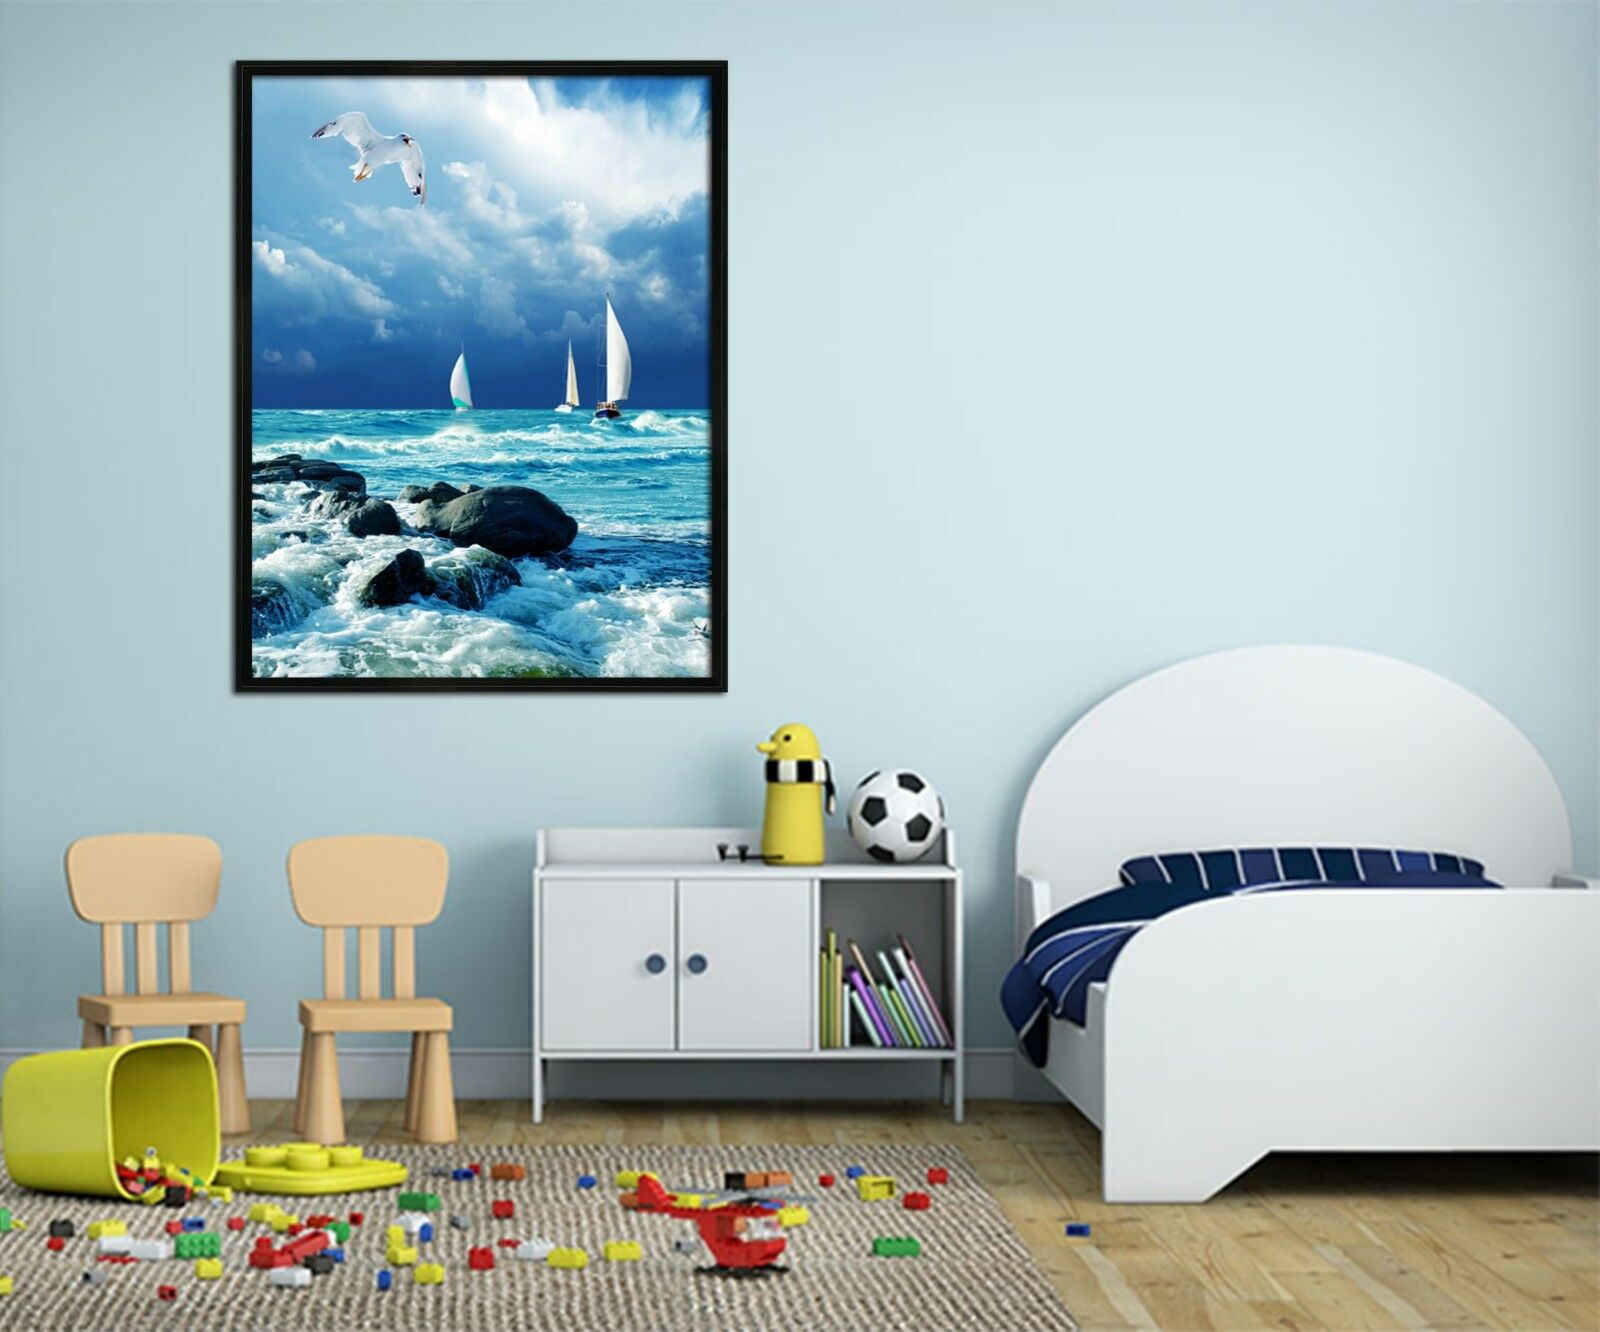 3D Sailboat Sky Sea 685 Fake Framed Poster Home Decor Print Painting Unique Art